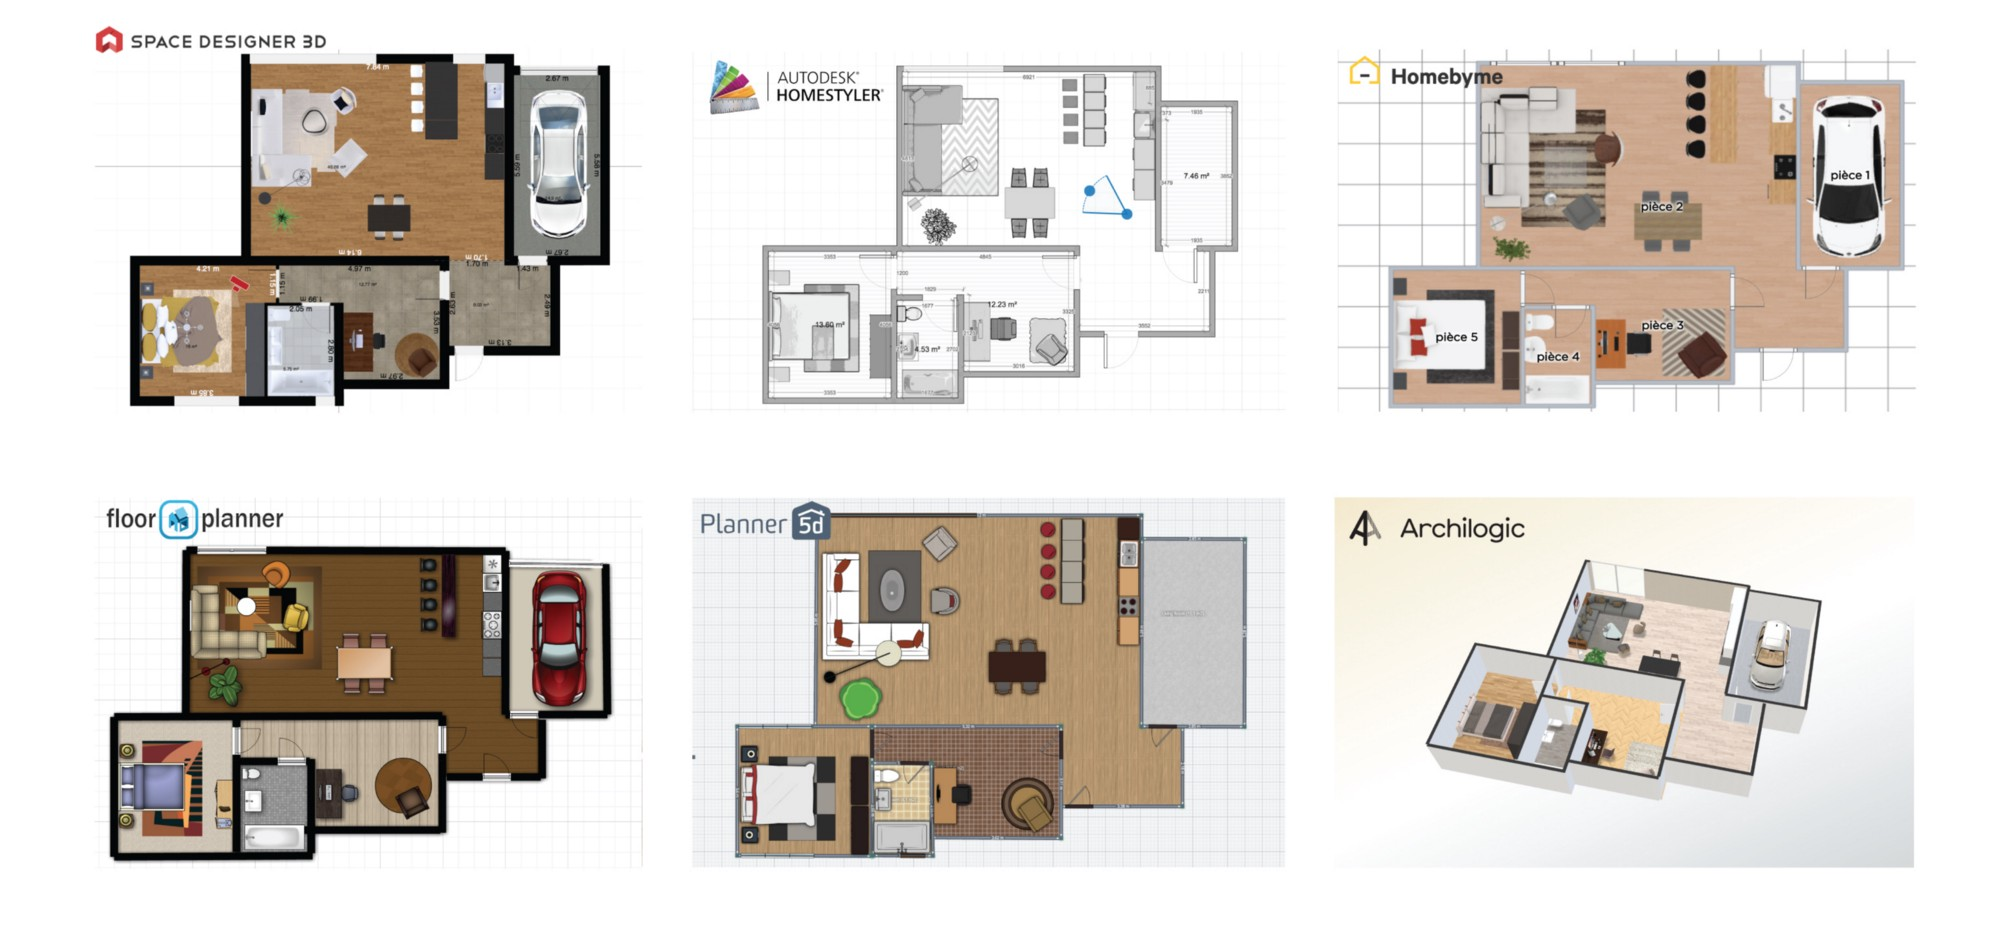 Space Designer 3d Vs Giants Of Floor Planning Space